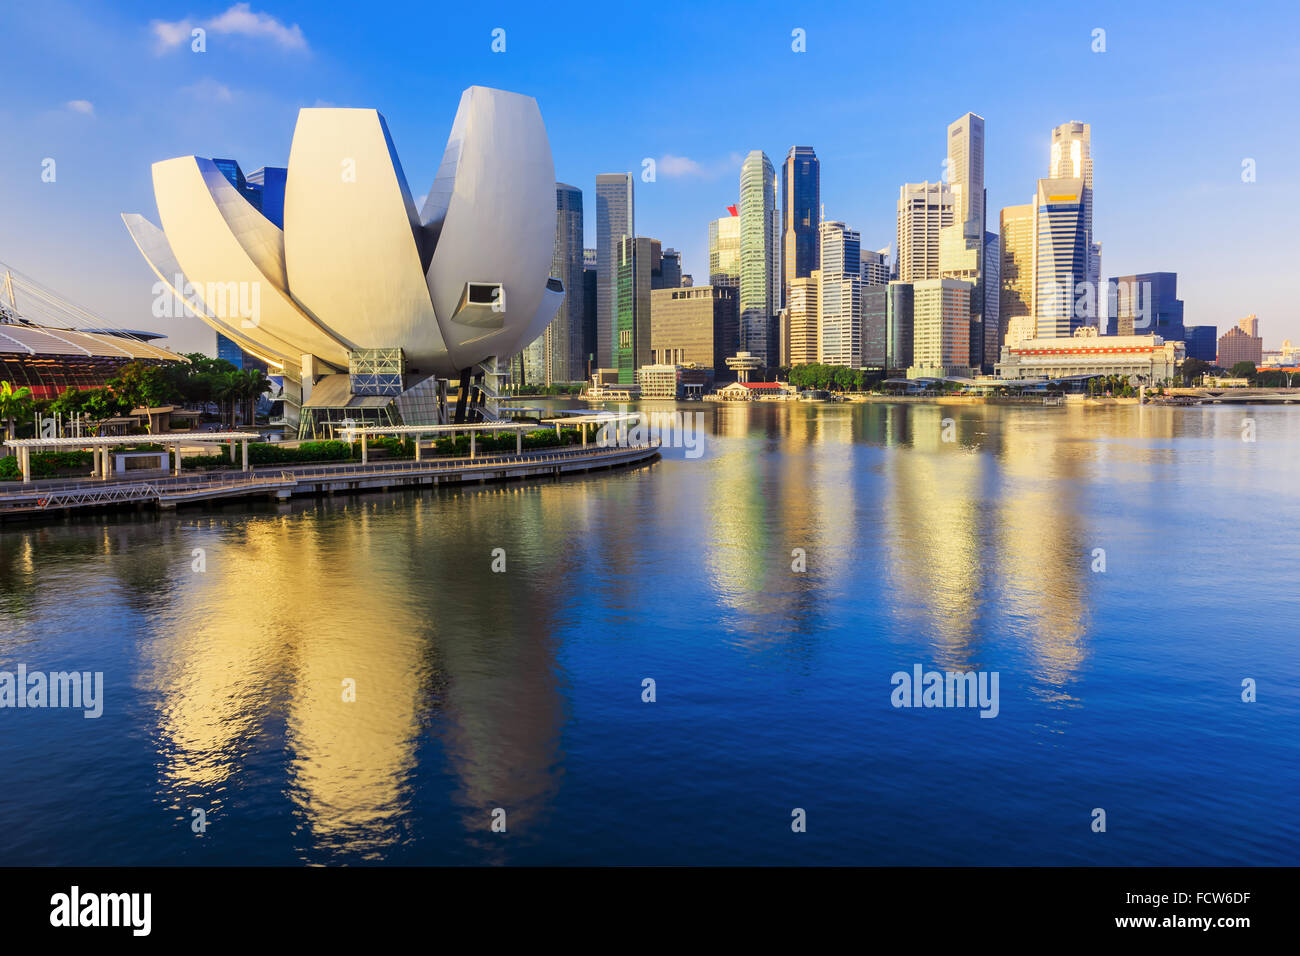 Singapore City, Singapore. Marina Bay and the skyline. - Stock Image